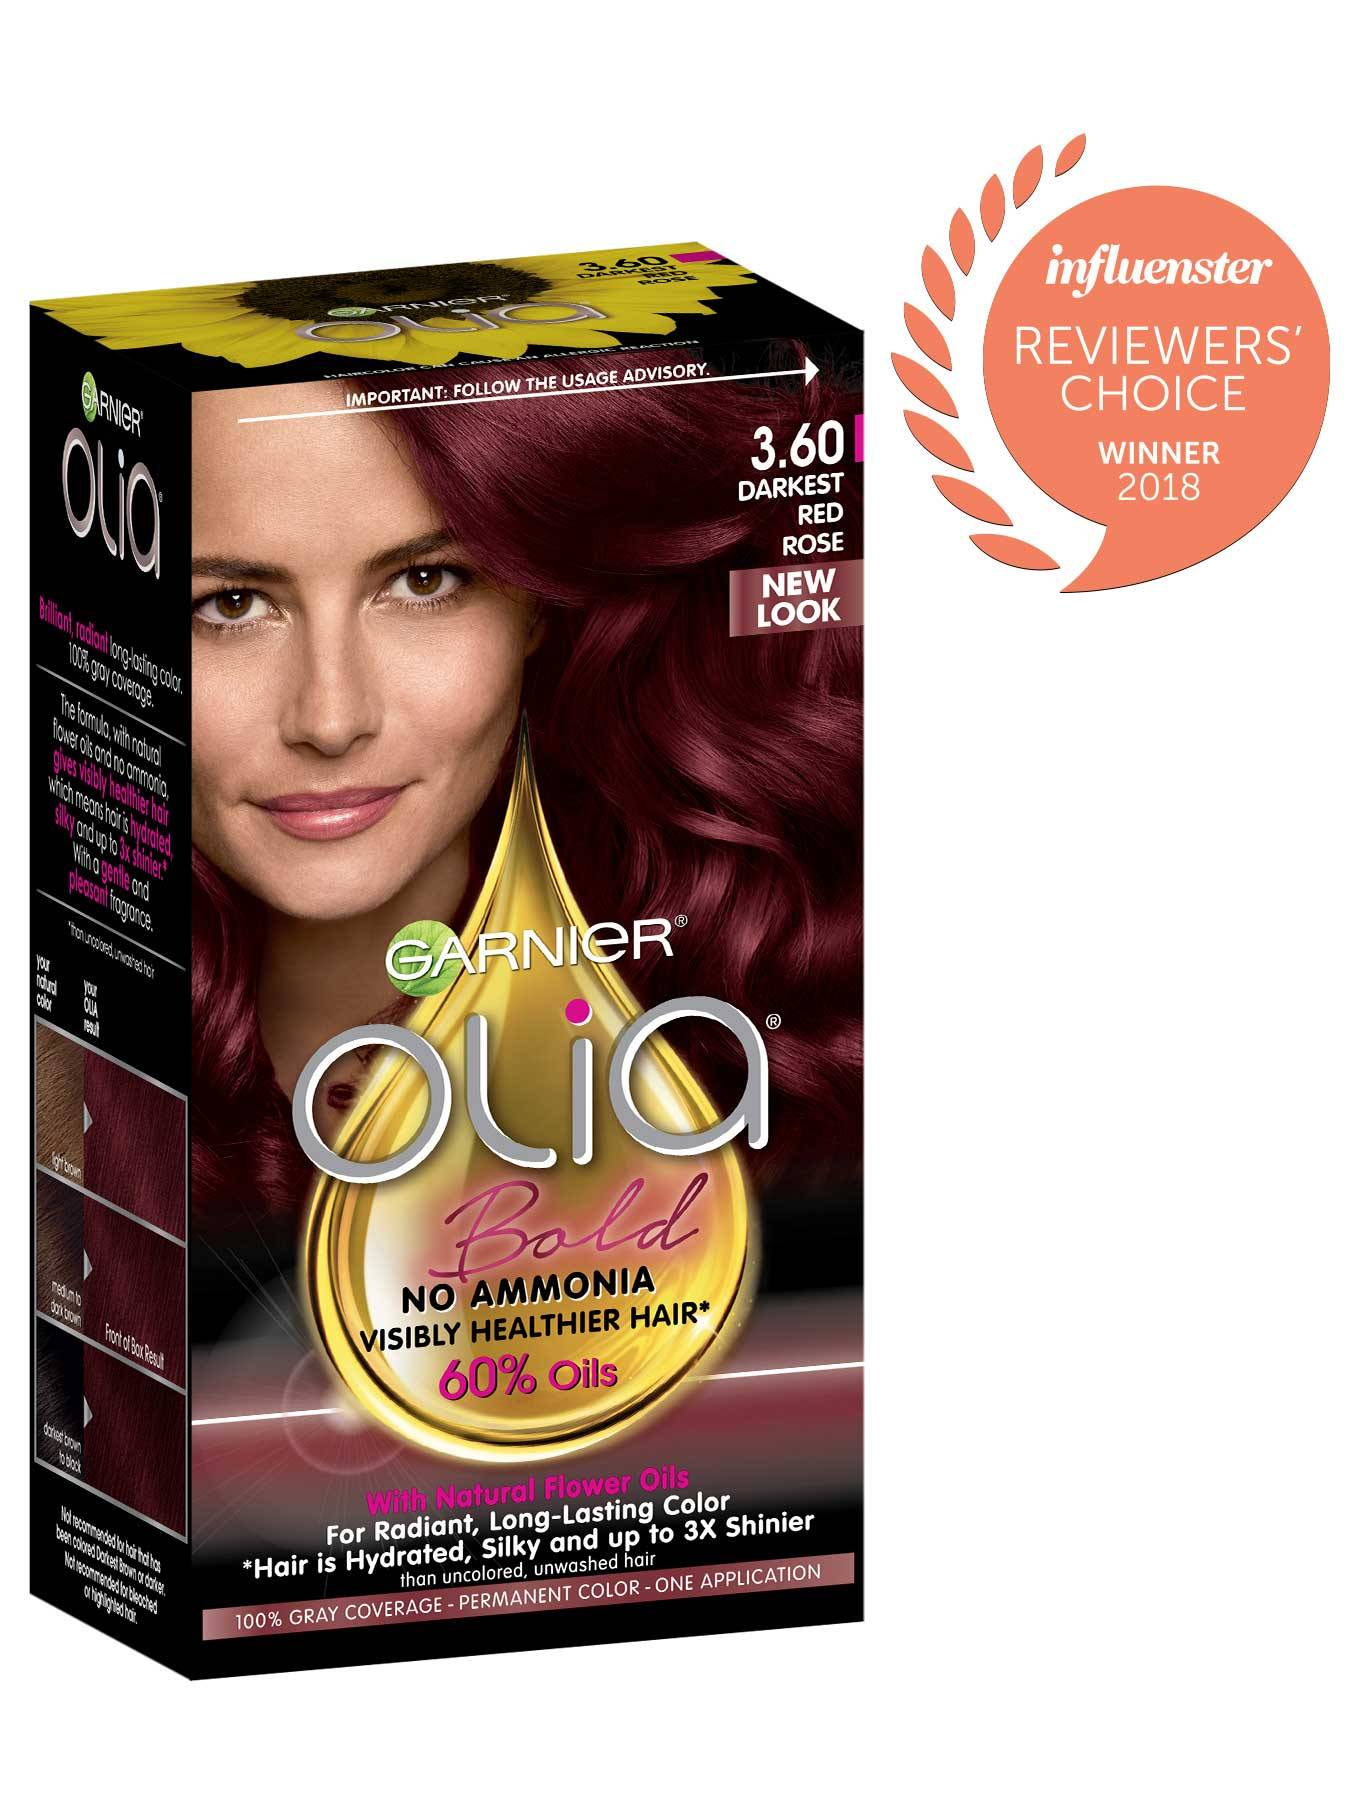 Garnier Olia Bold Packshot Award 3.60 Darkest Red Rose